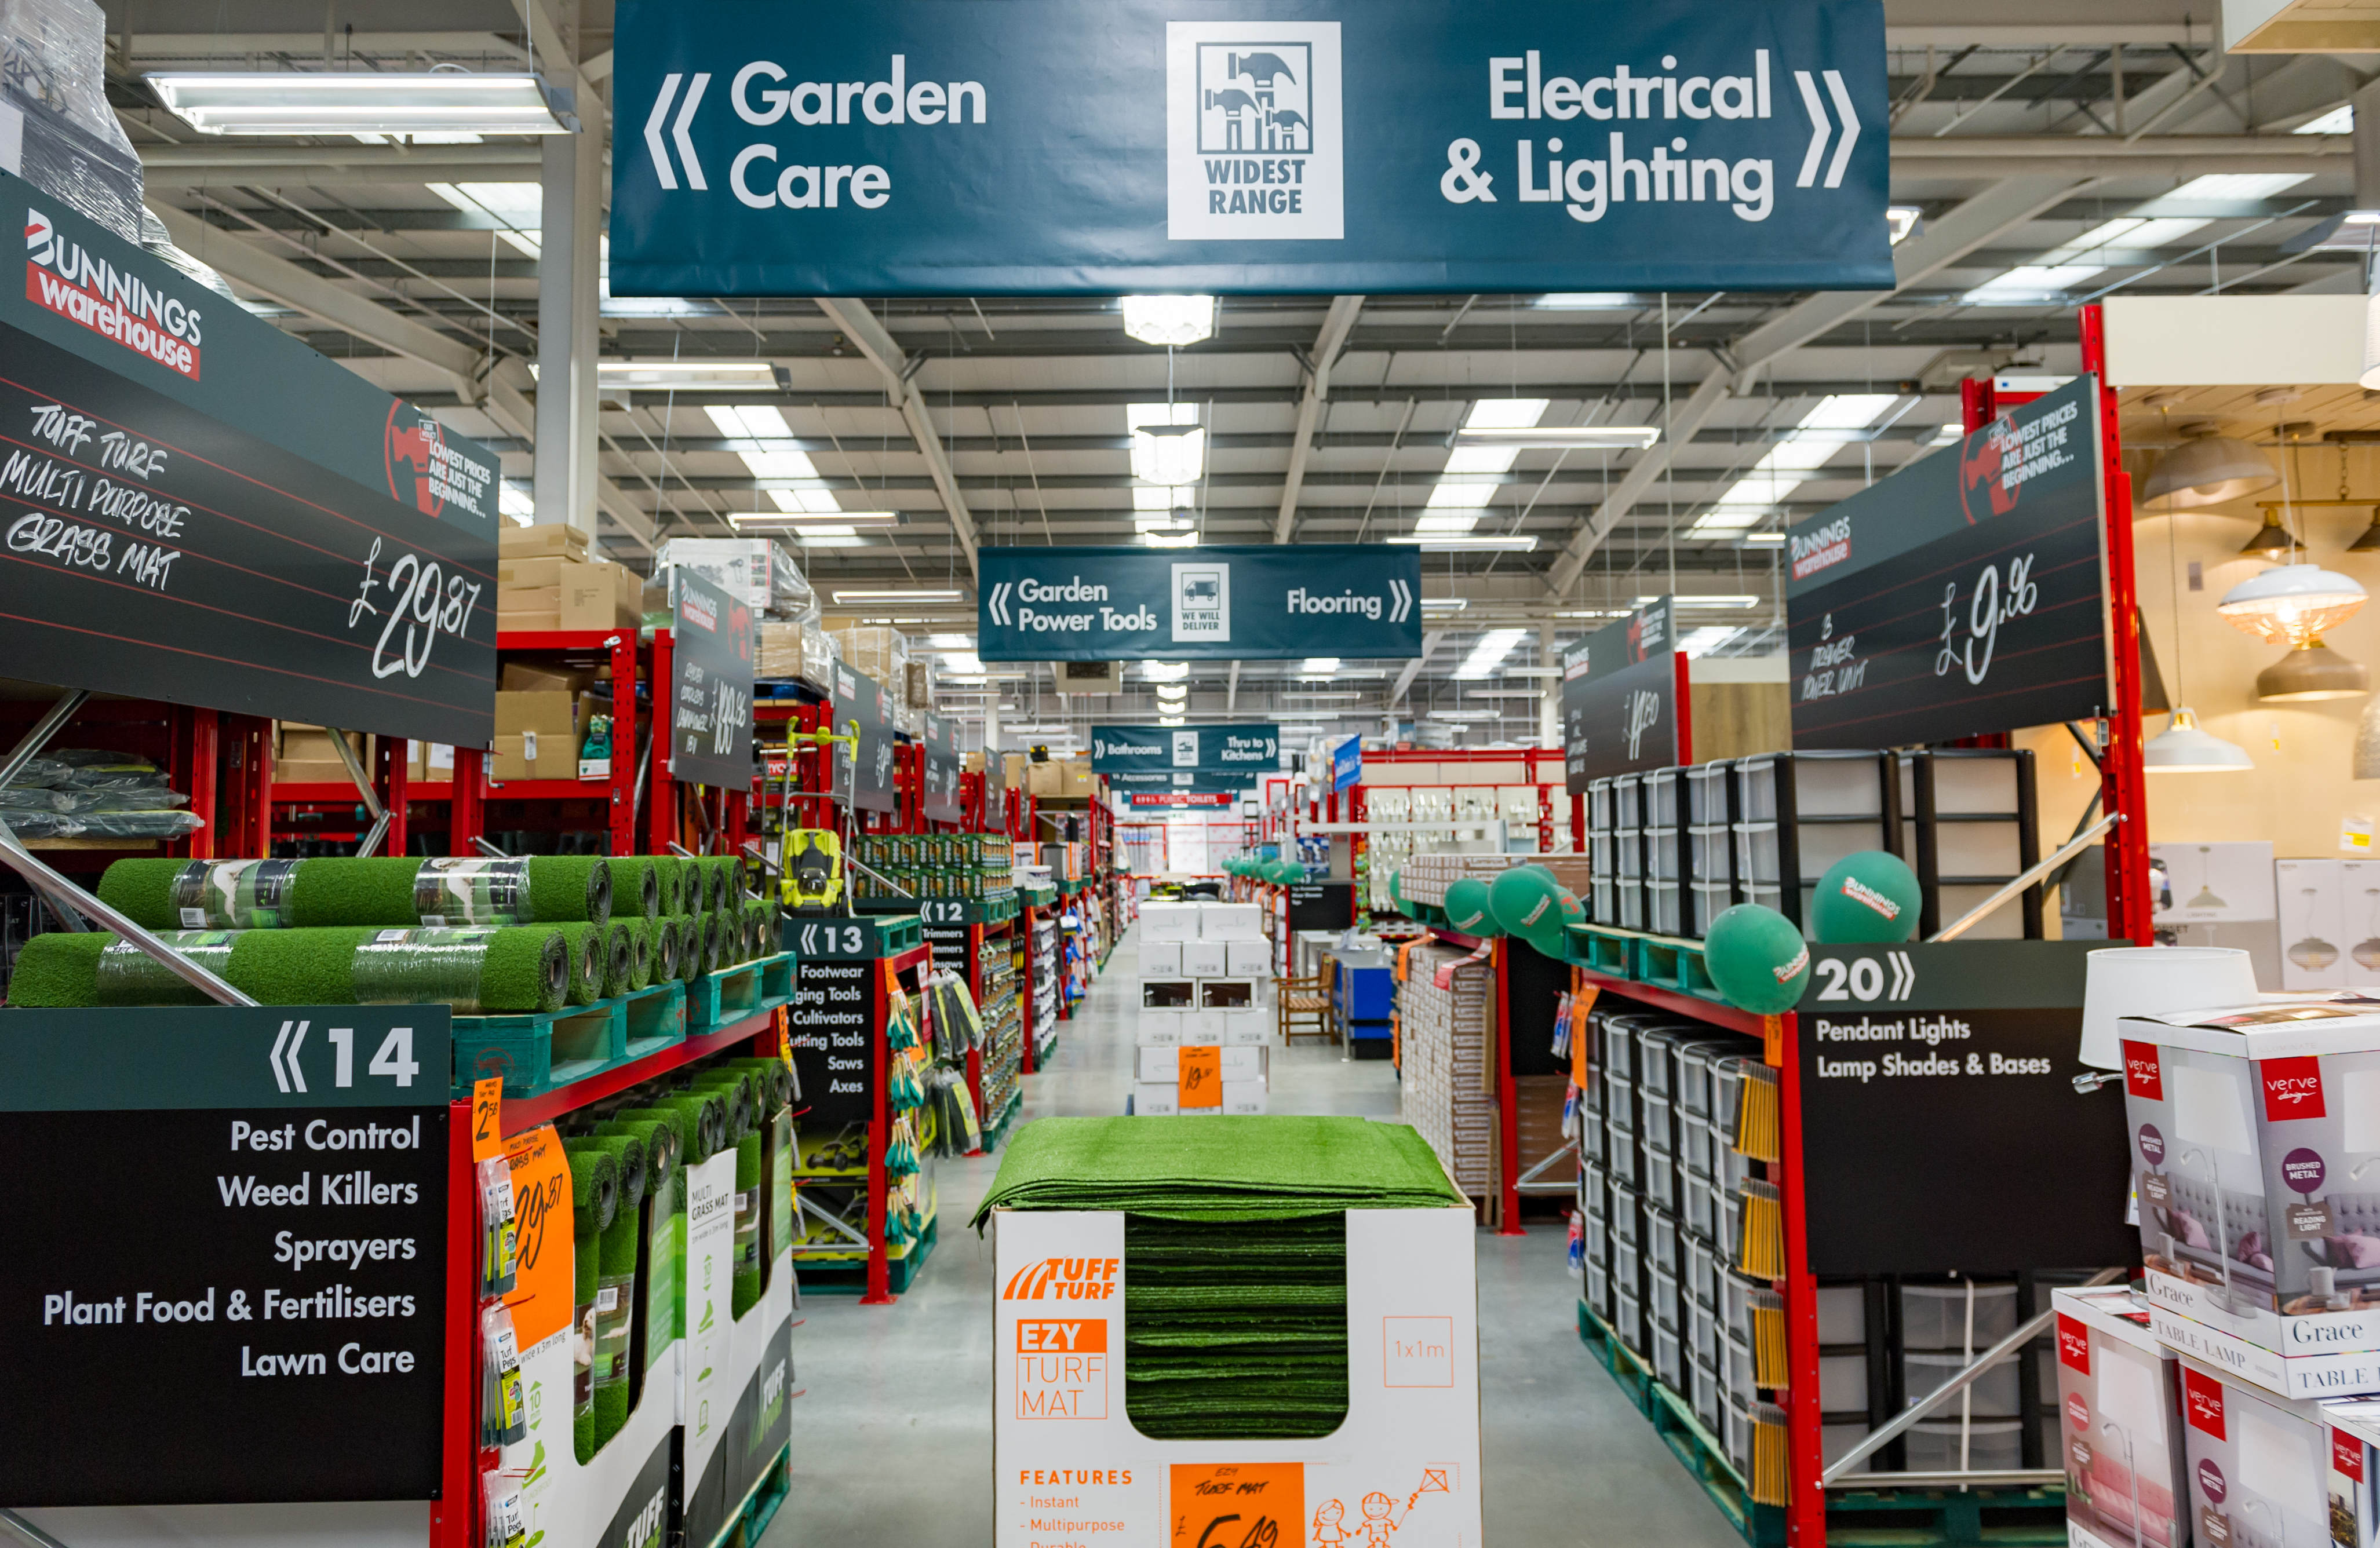 Bunnings opens in hemel hempstead housewares the third bunnings warehouse store in the uk opened its doors in the hertfordshire town of hemel hempstead last week friday june 10 mozeypictures Images